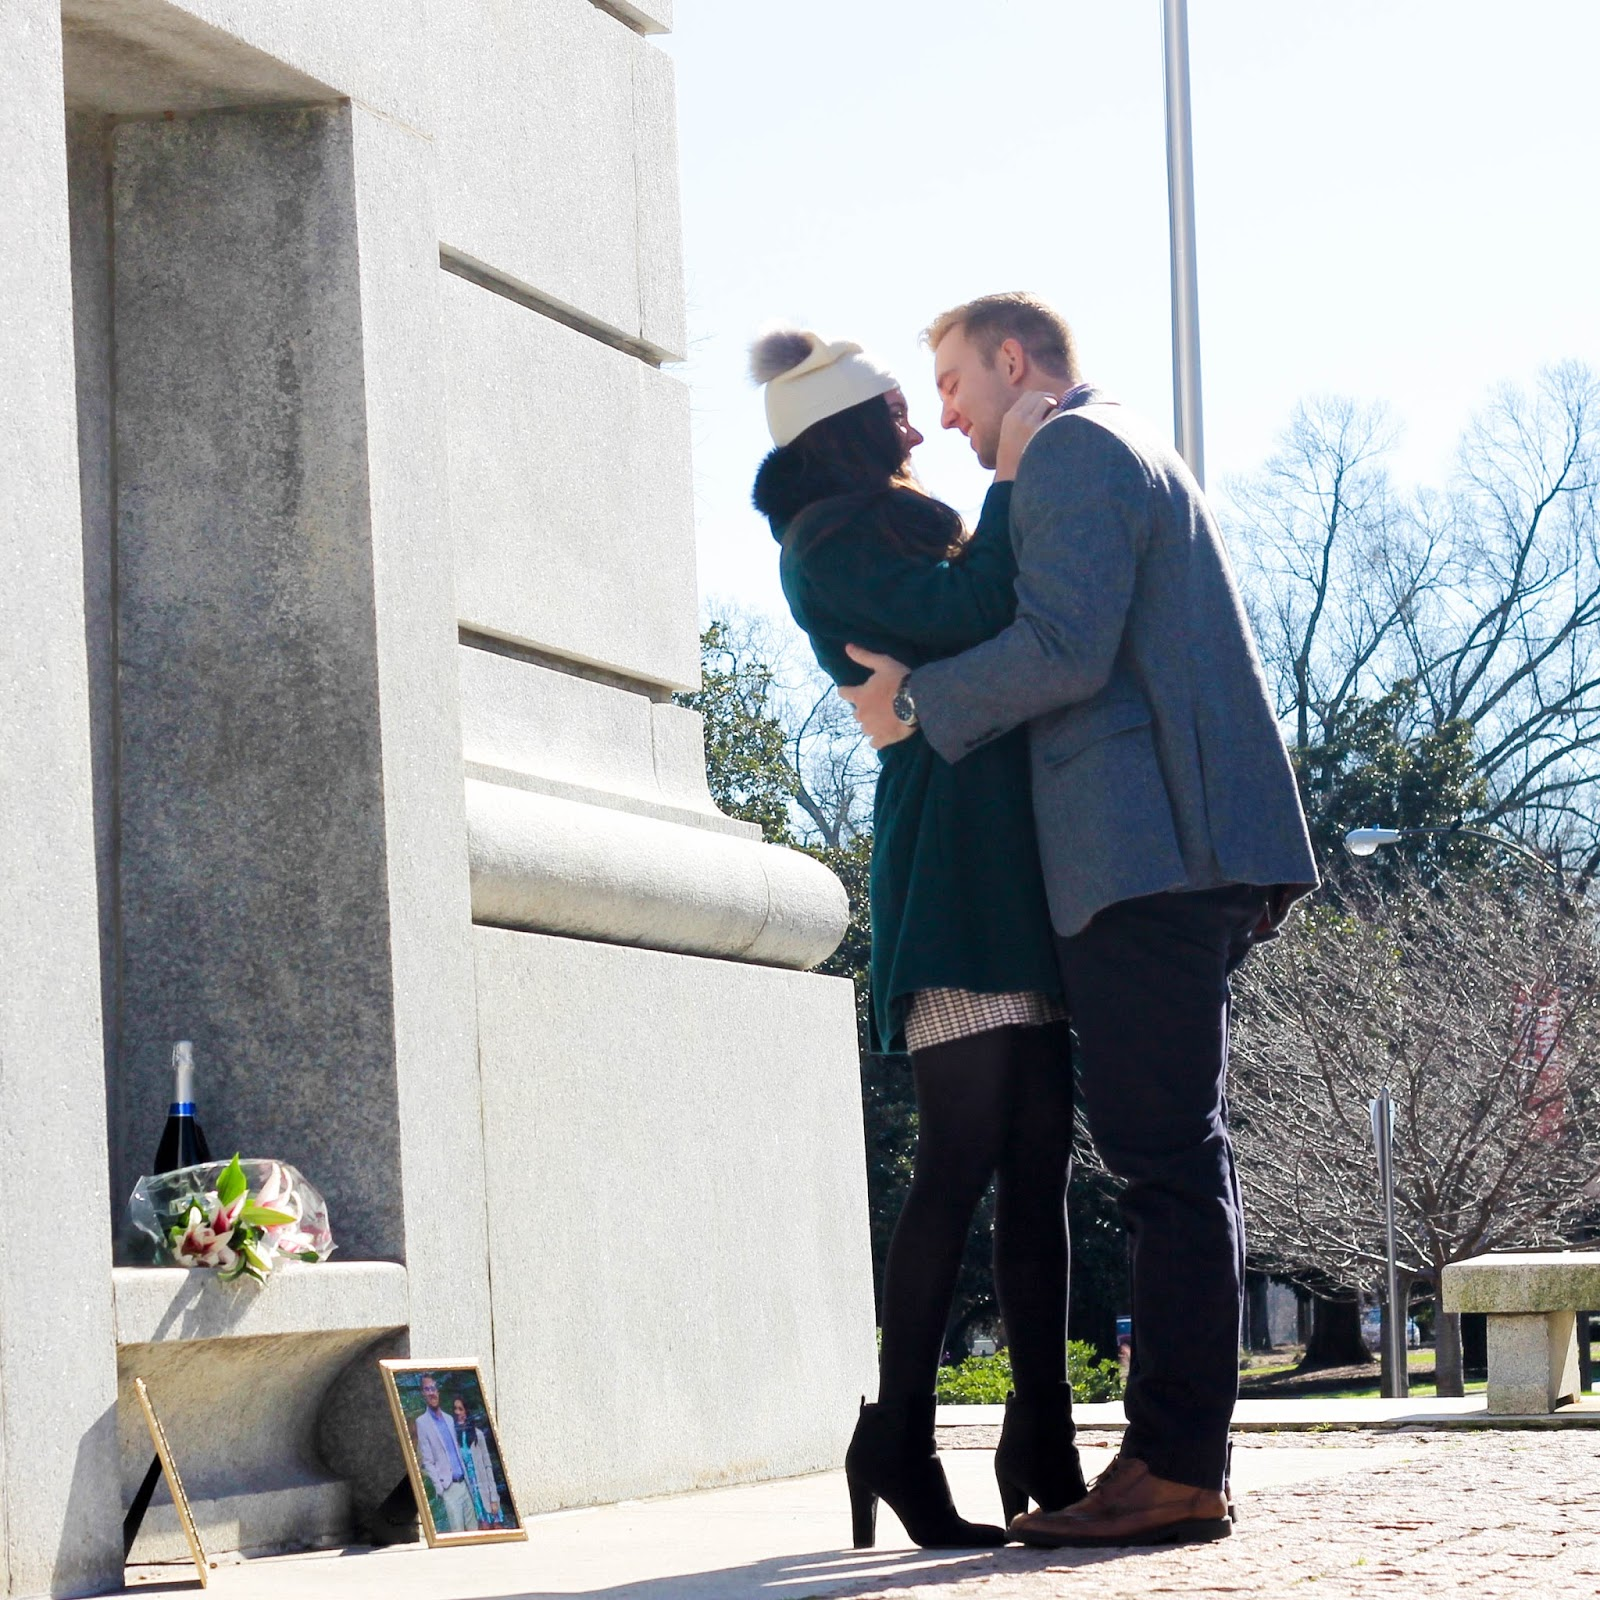 NC State Bell Tower Photos, NC State Bell Tower Photography Ideas, NC State Proposal, NC State engagement, nc state couple, pretty in the pines, fashion blogger, blogger bride to be